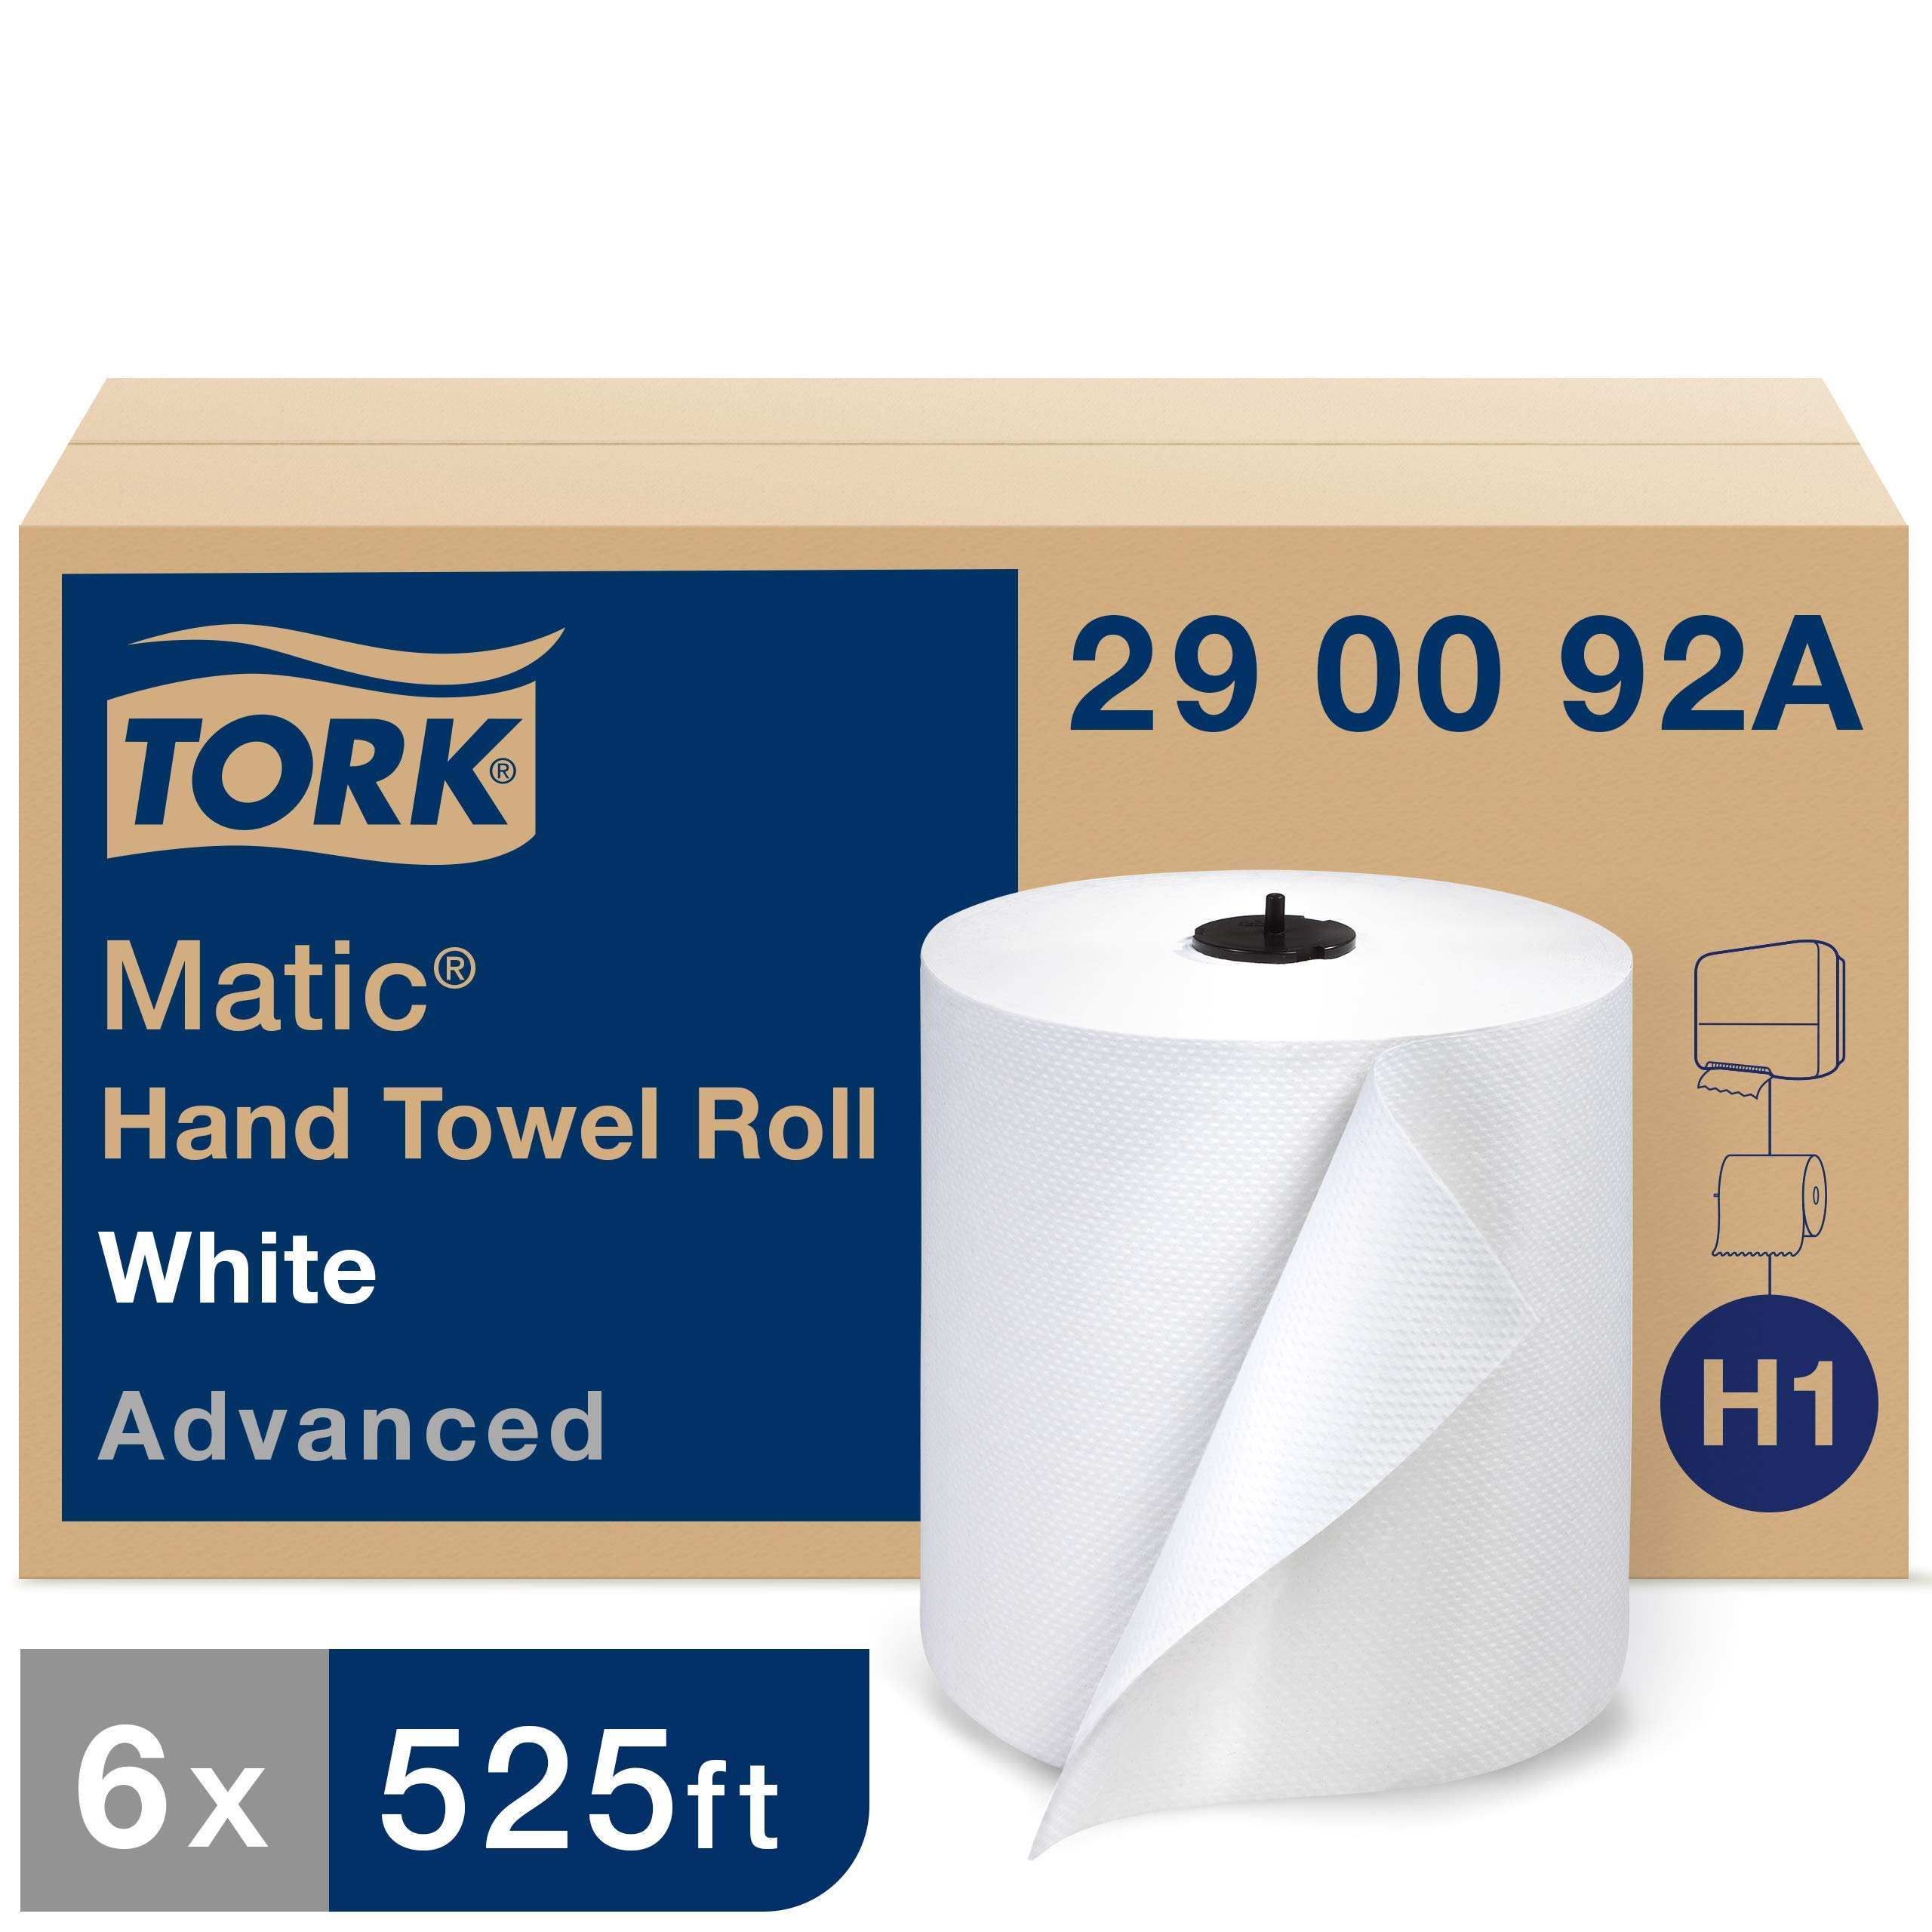 Tork Matic Advanced Paper Towel Roll H1, Paper Hand Towel 290092A, 100% Recycled Fiber, High Absorbancy, Medium Capacity 2-Ply, White - 6 Rolls x 525 ft